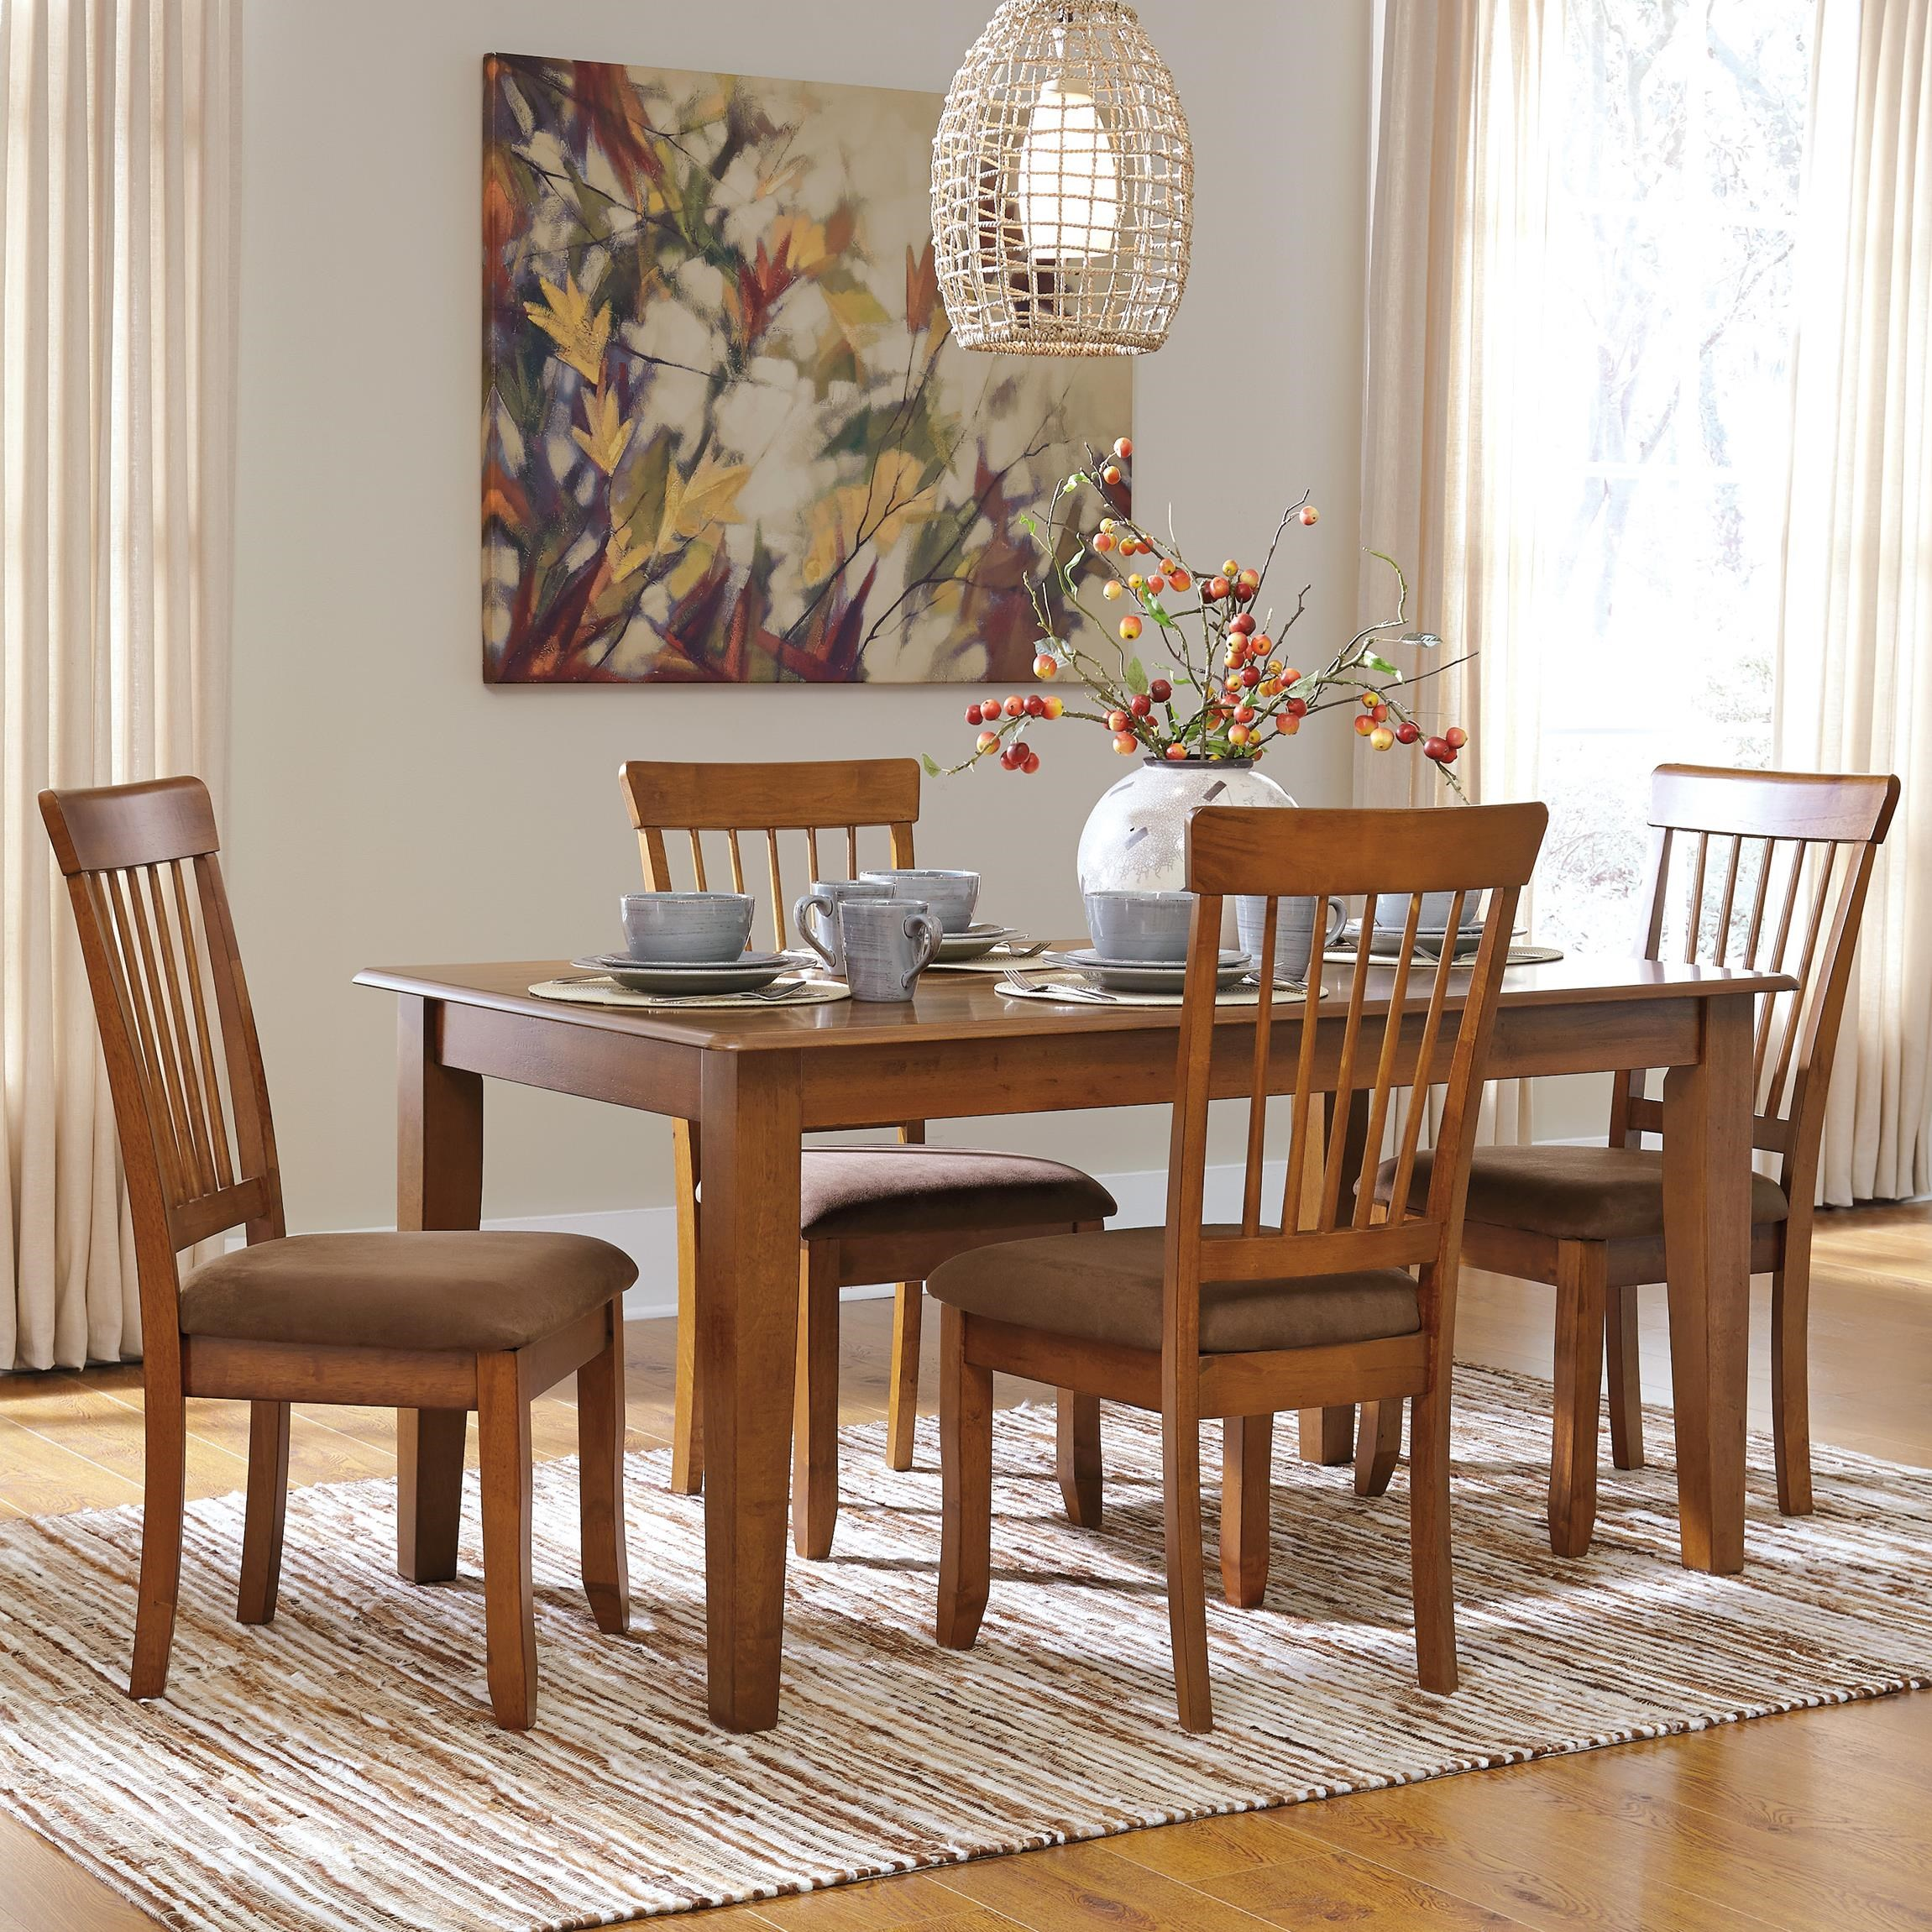 Dining Room Chair Sets Barista 5 Piece 36x60 Table Chair Set By Ashley Furniture At John V Schultz Furniture